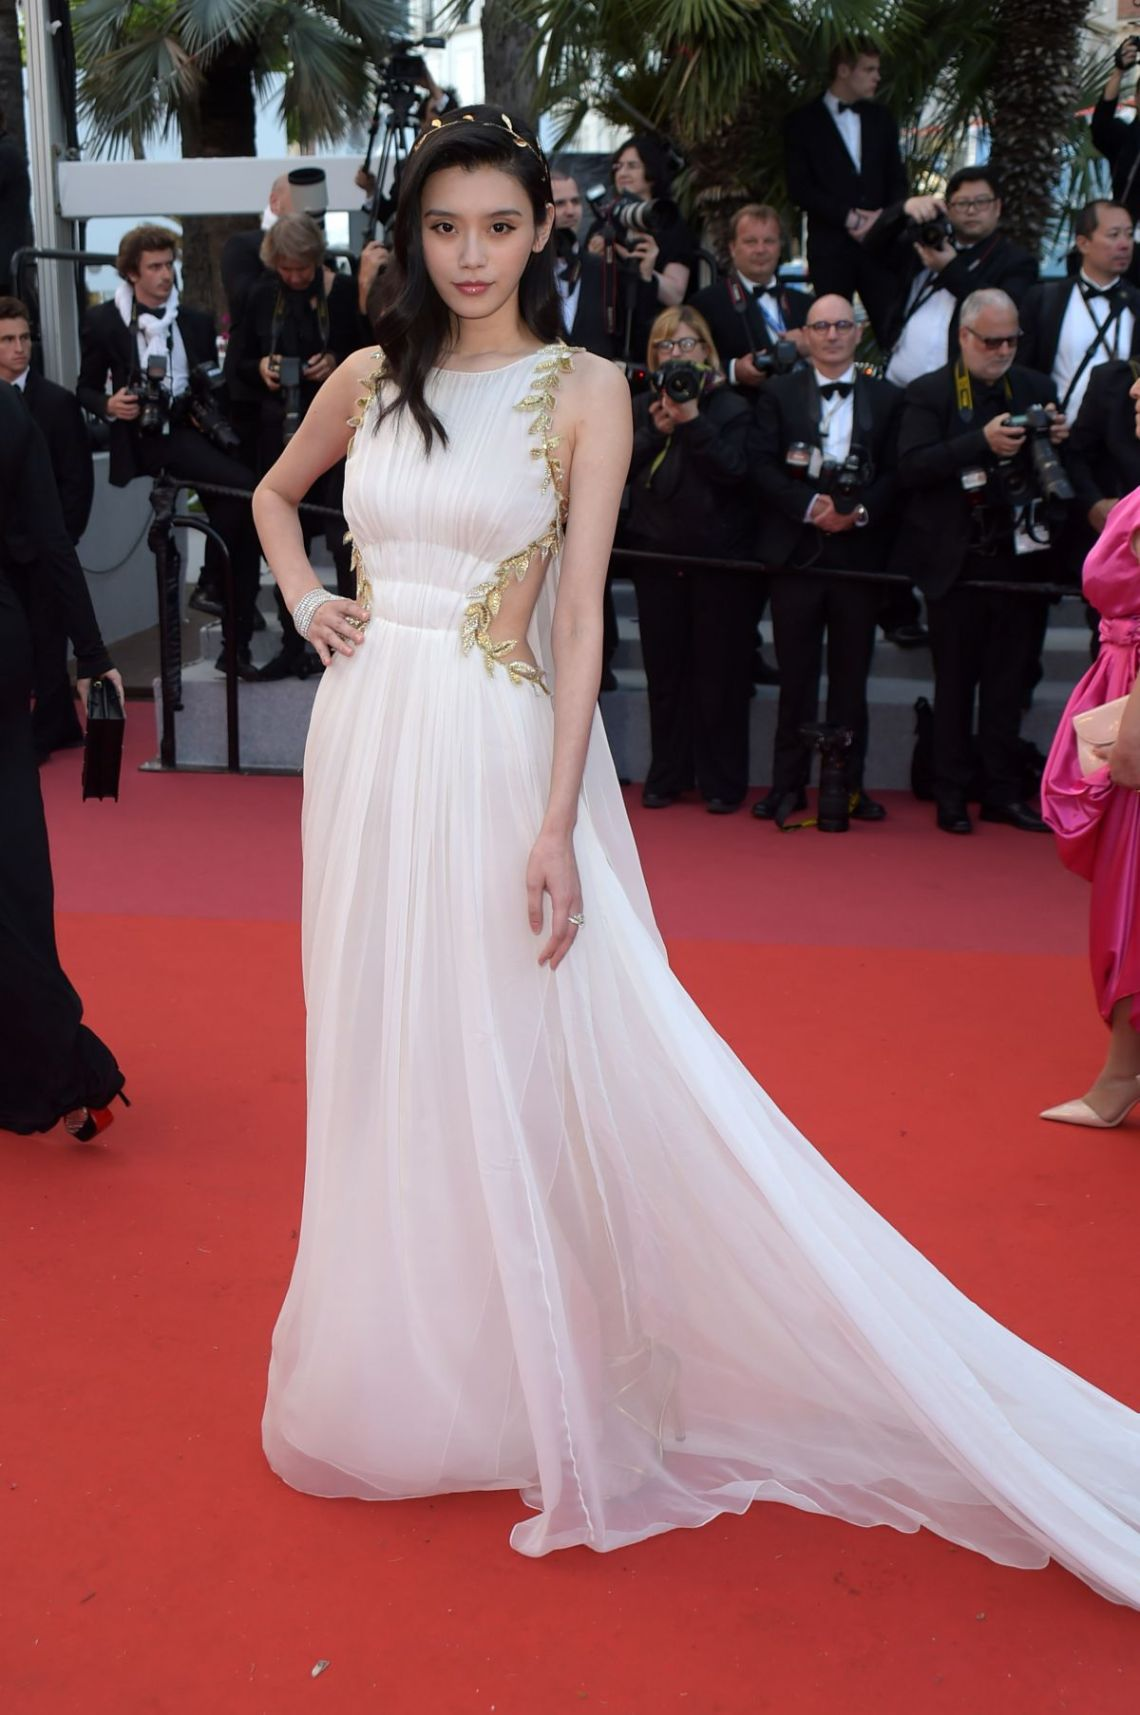 ming-xi-at-sink-or-swim-premiere-at-2018-cannes-film-festival-05-13-2018-0.jpg